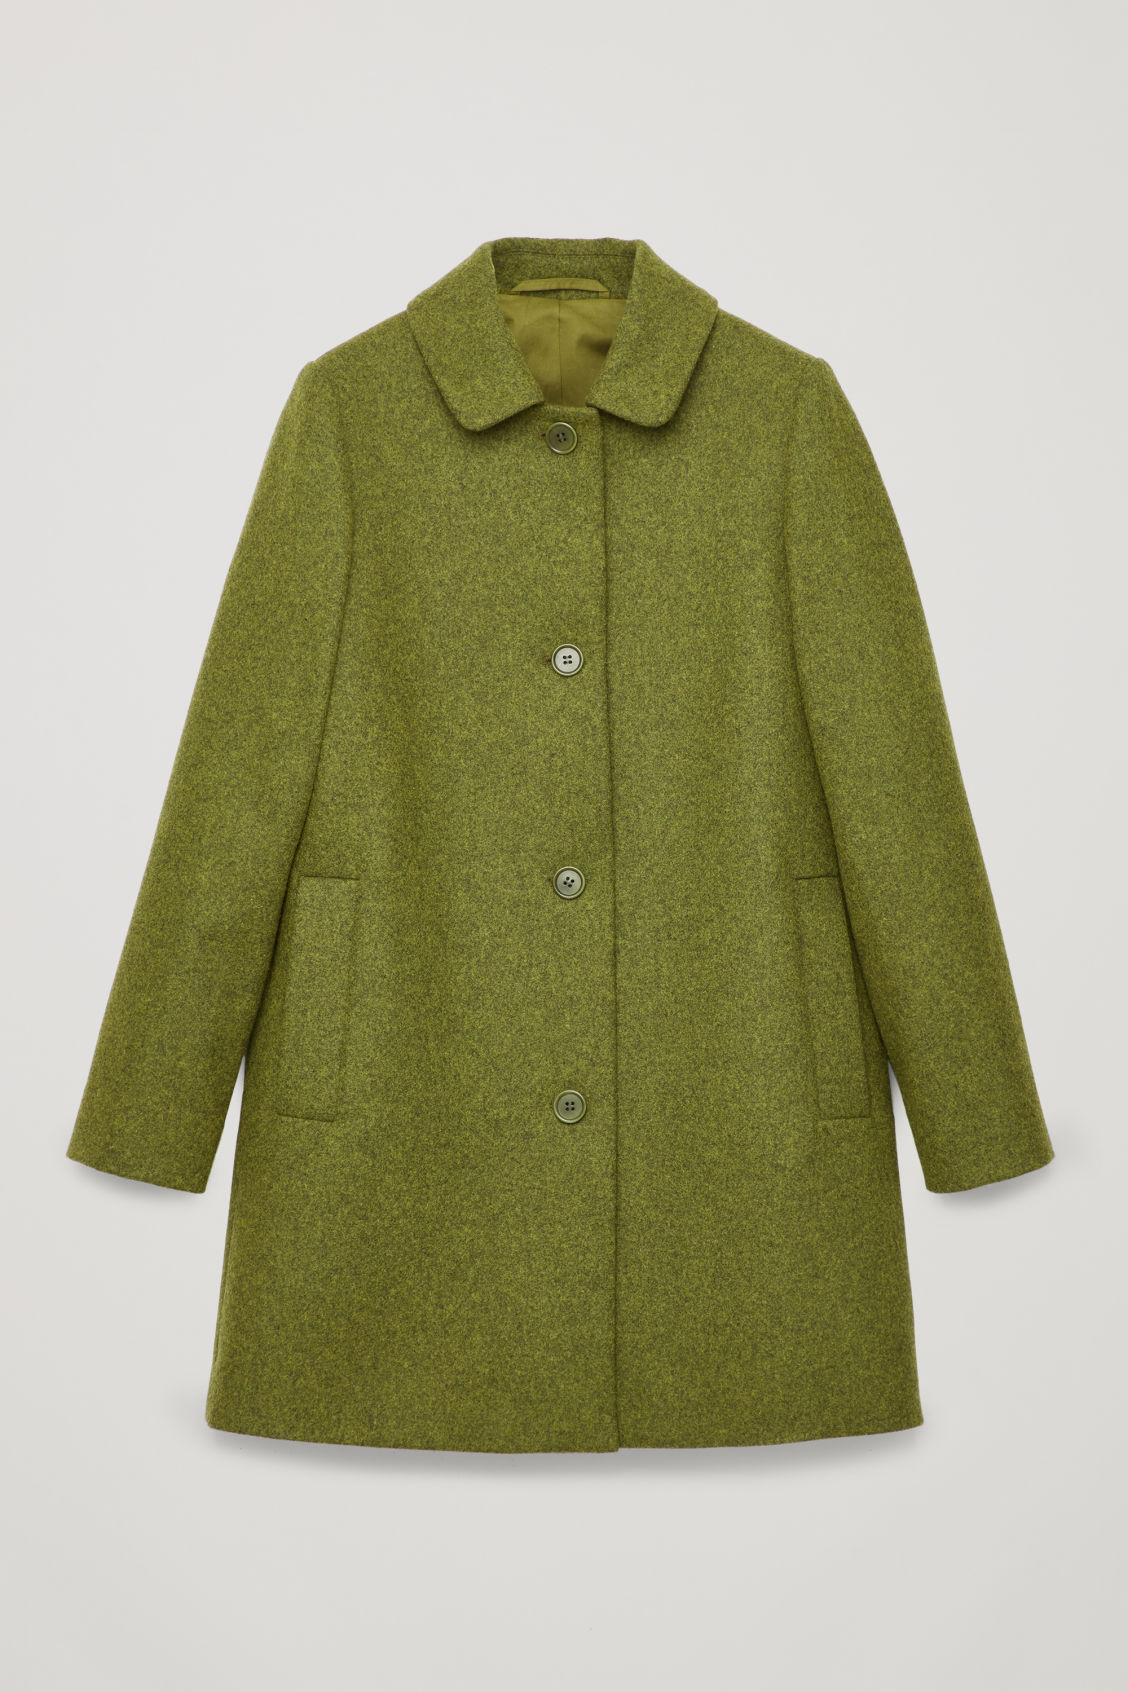 Straight Wool Coat, Green from COS